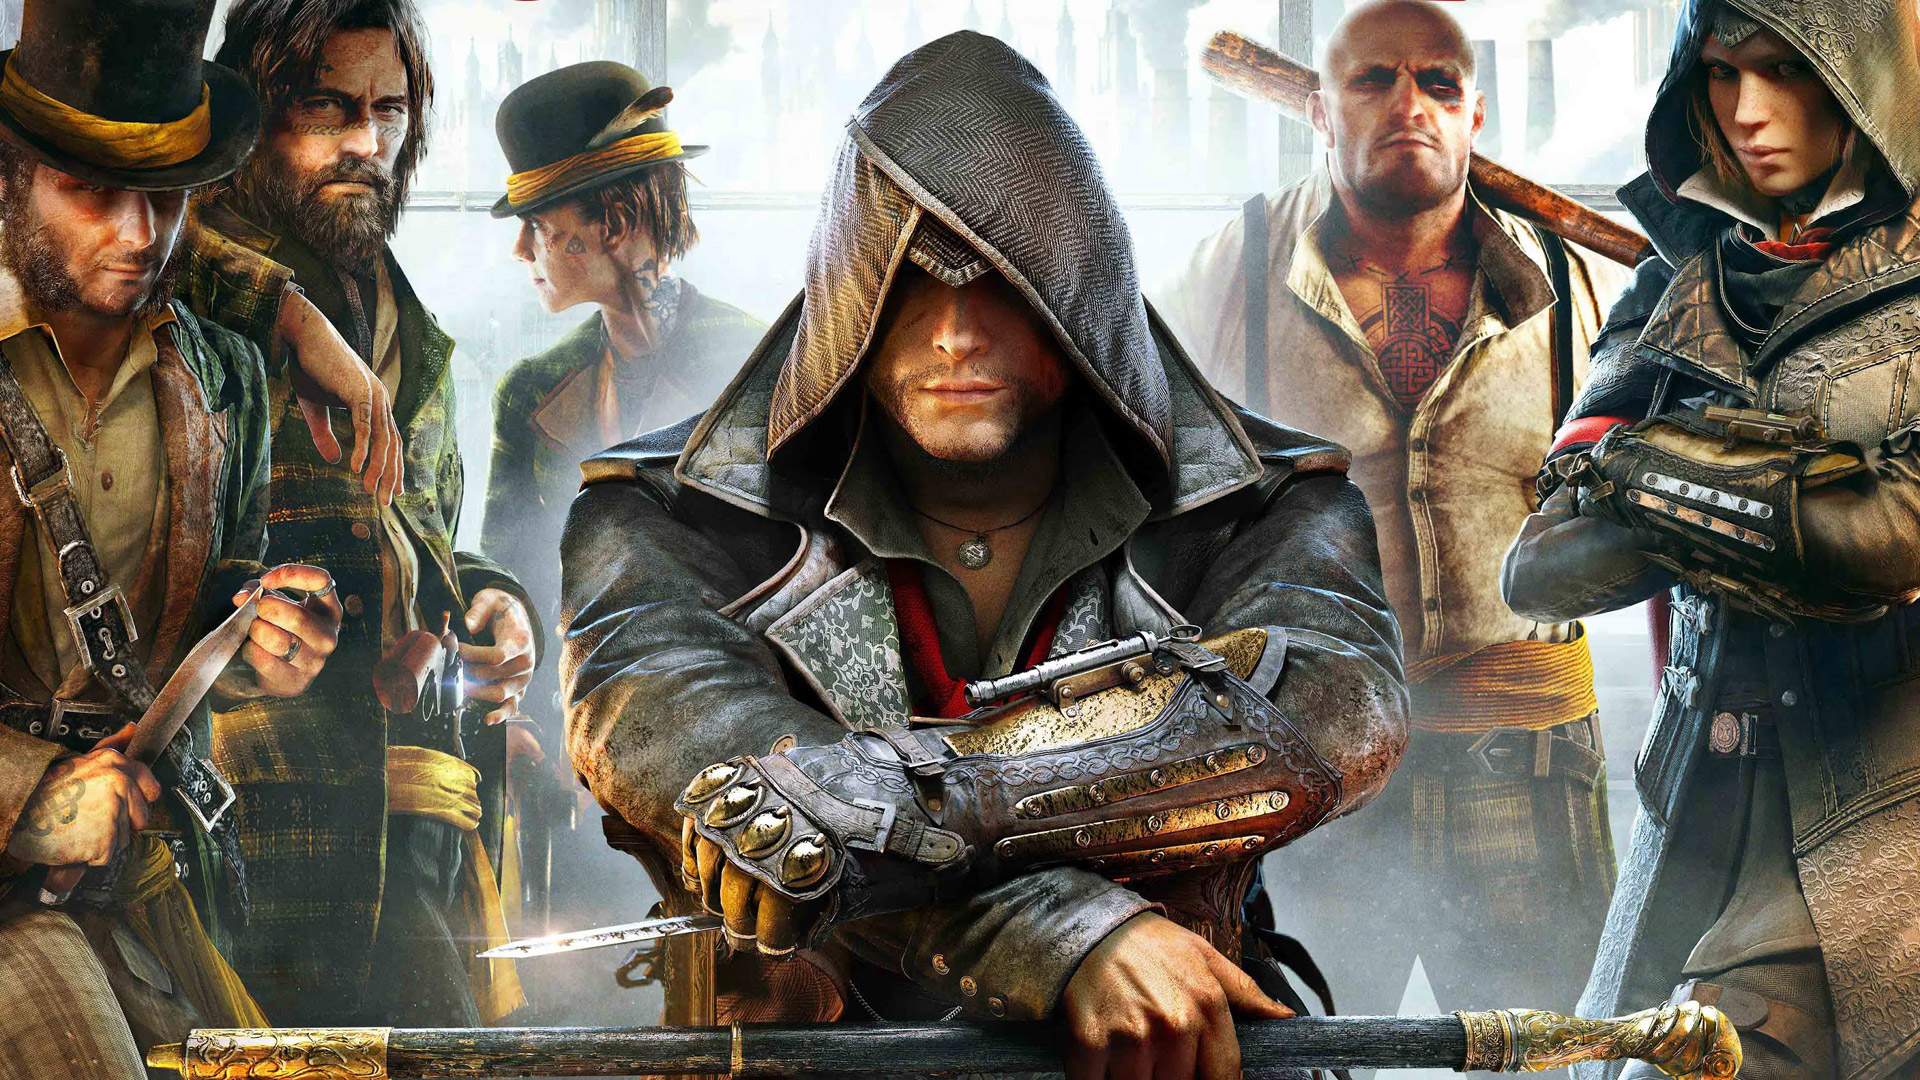 Free Download Assassins Creed Syndicate Wallpaper In 1920x1080